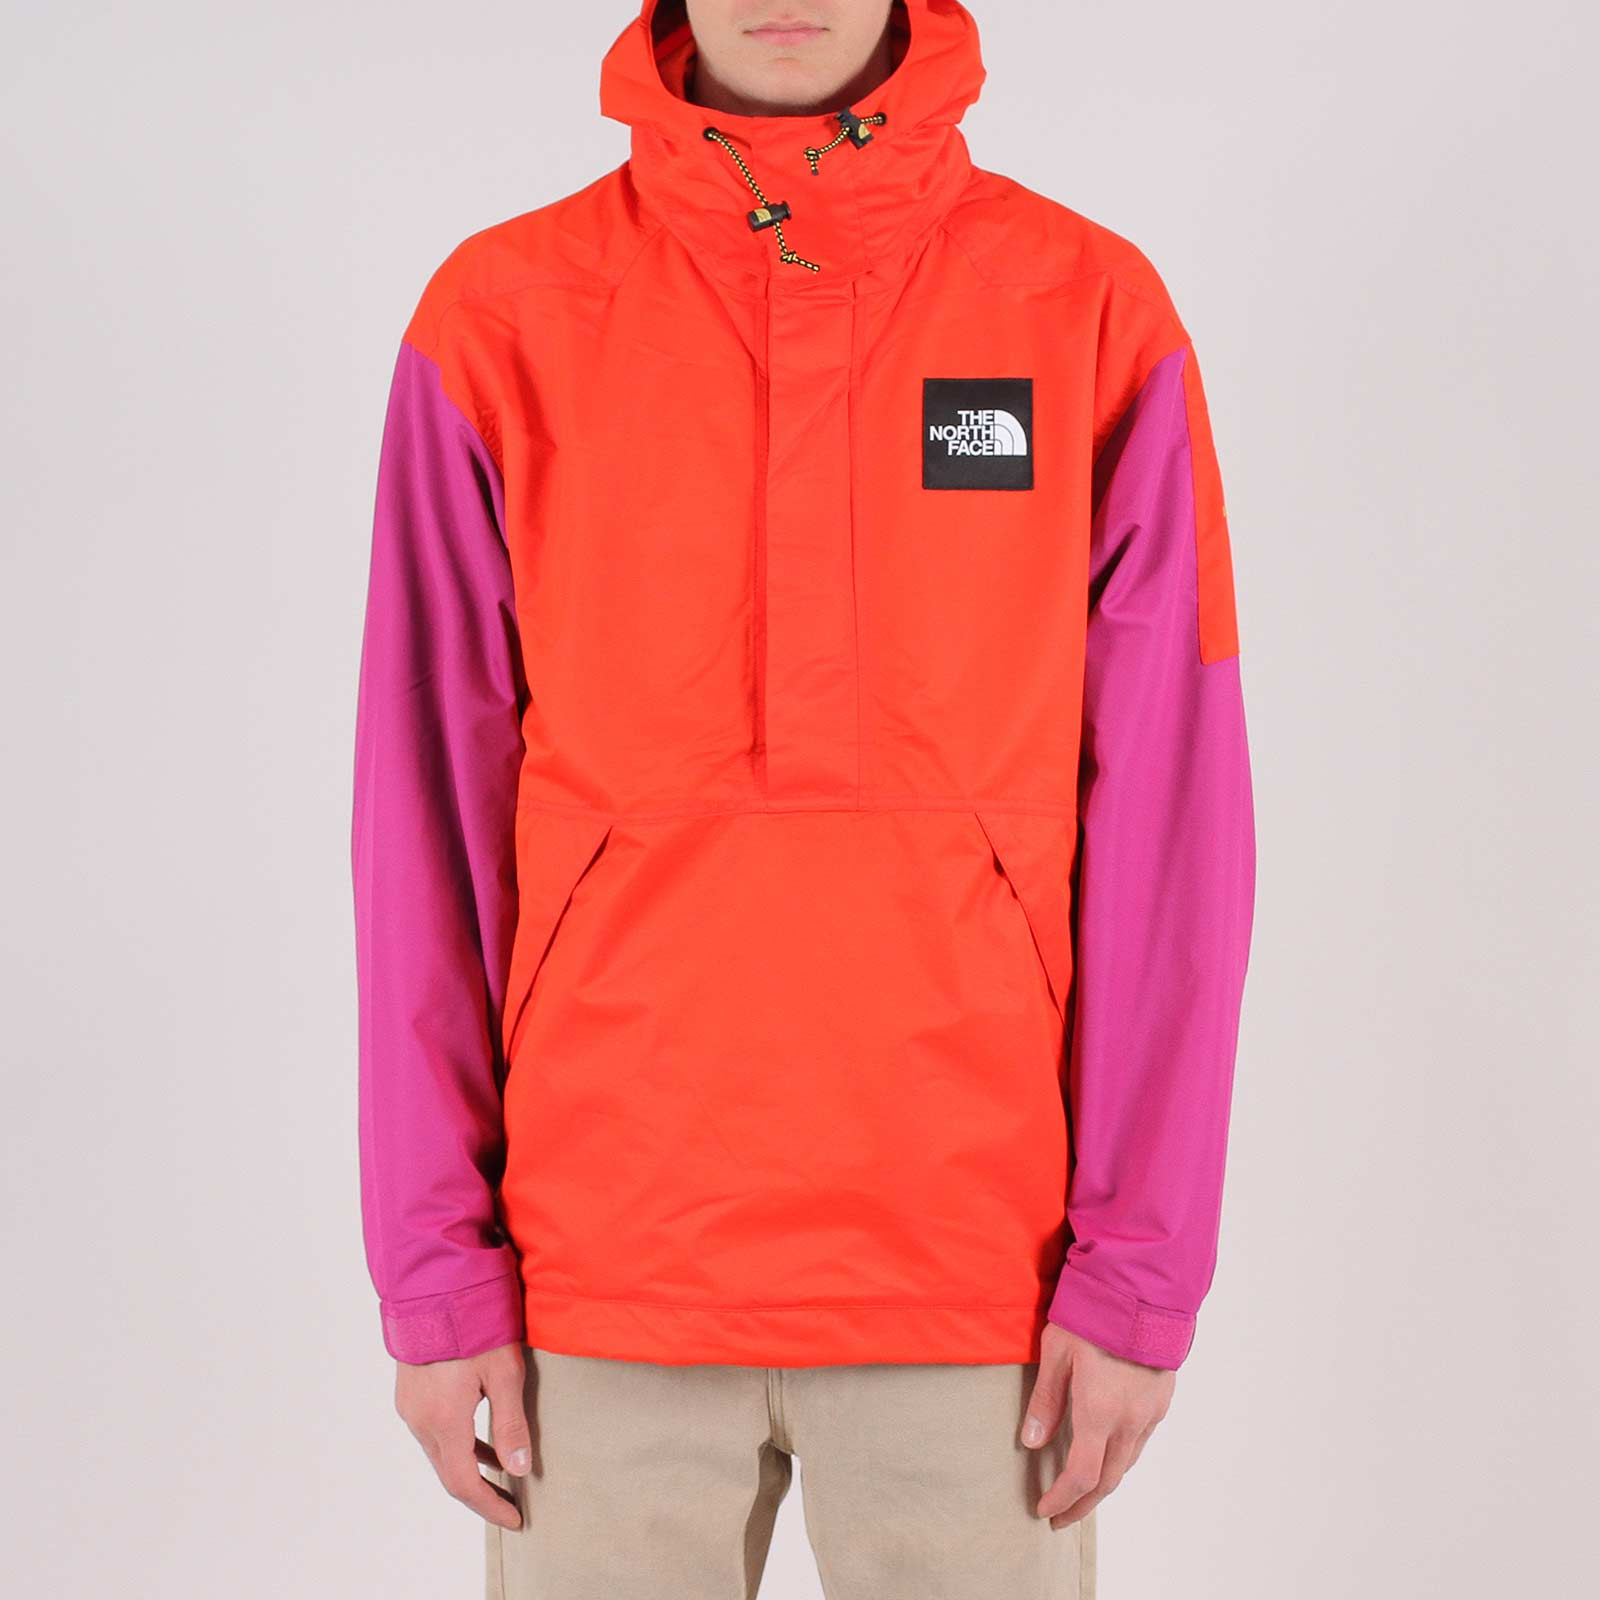 north face goteborg